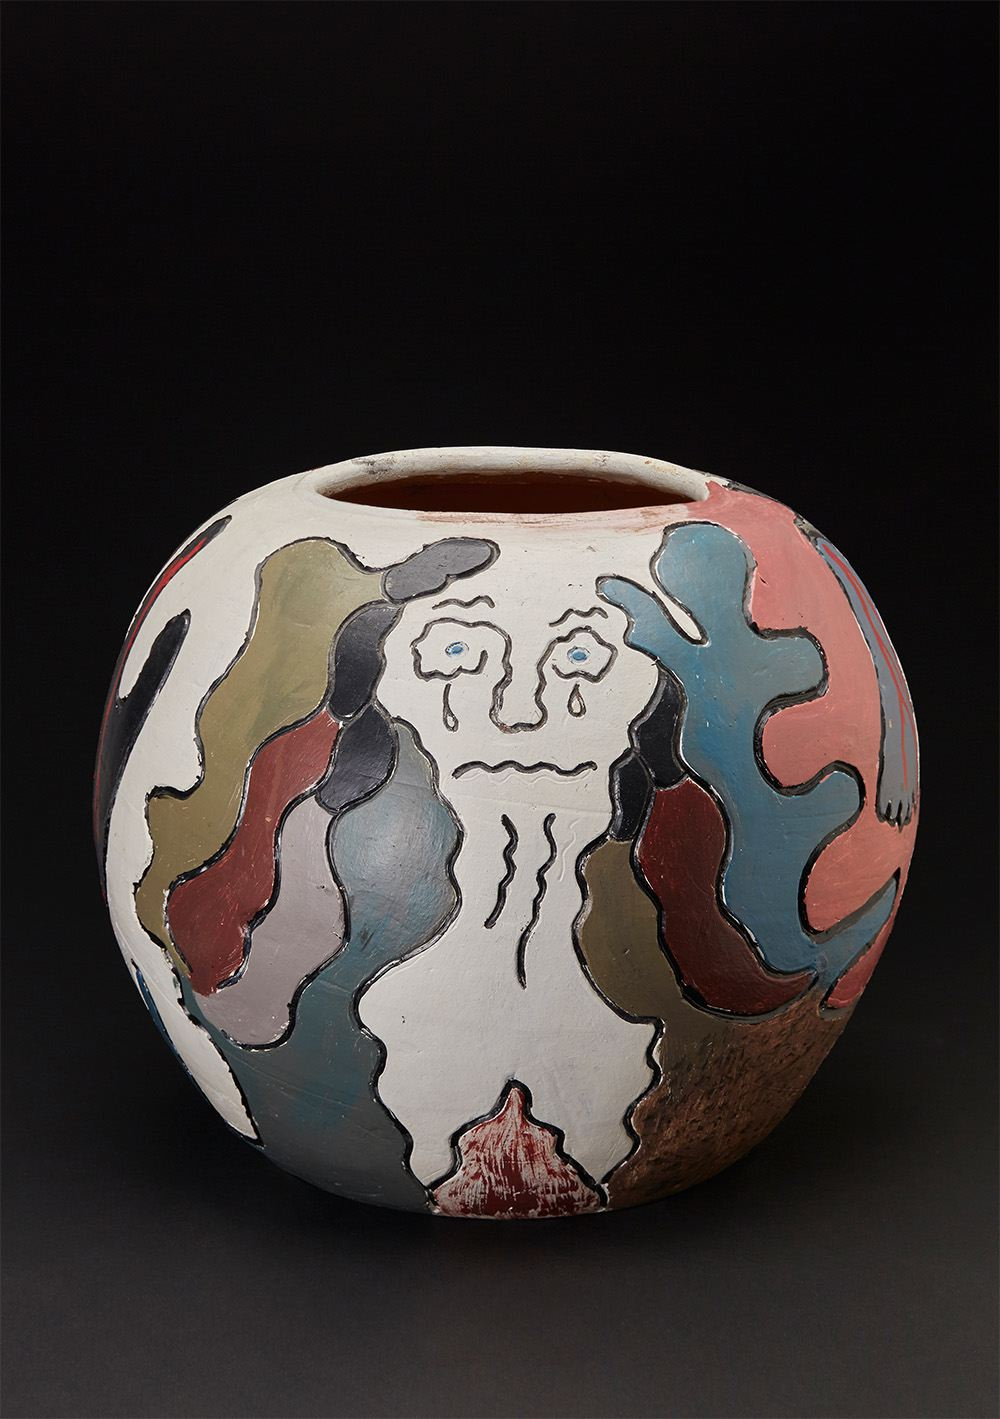 Sylvester Stephens    Art is Pain  , 1996 Polychromed terracotta 12.5 x 14 x 14 inches 31.8 x 35.6 x 35.6 cm SS 5